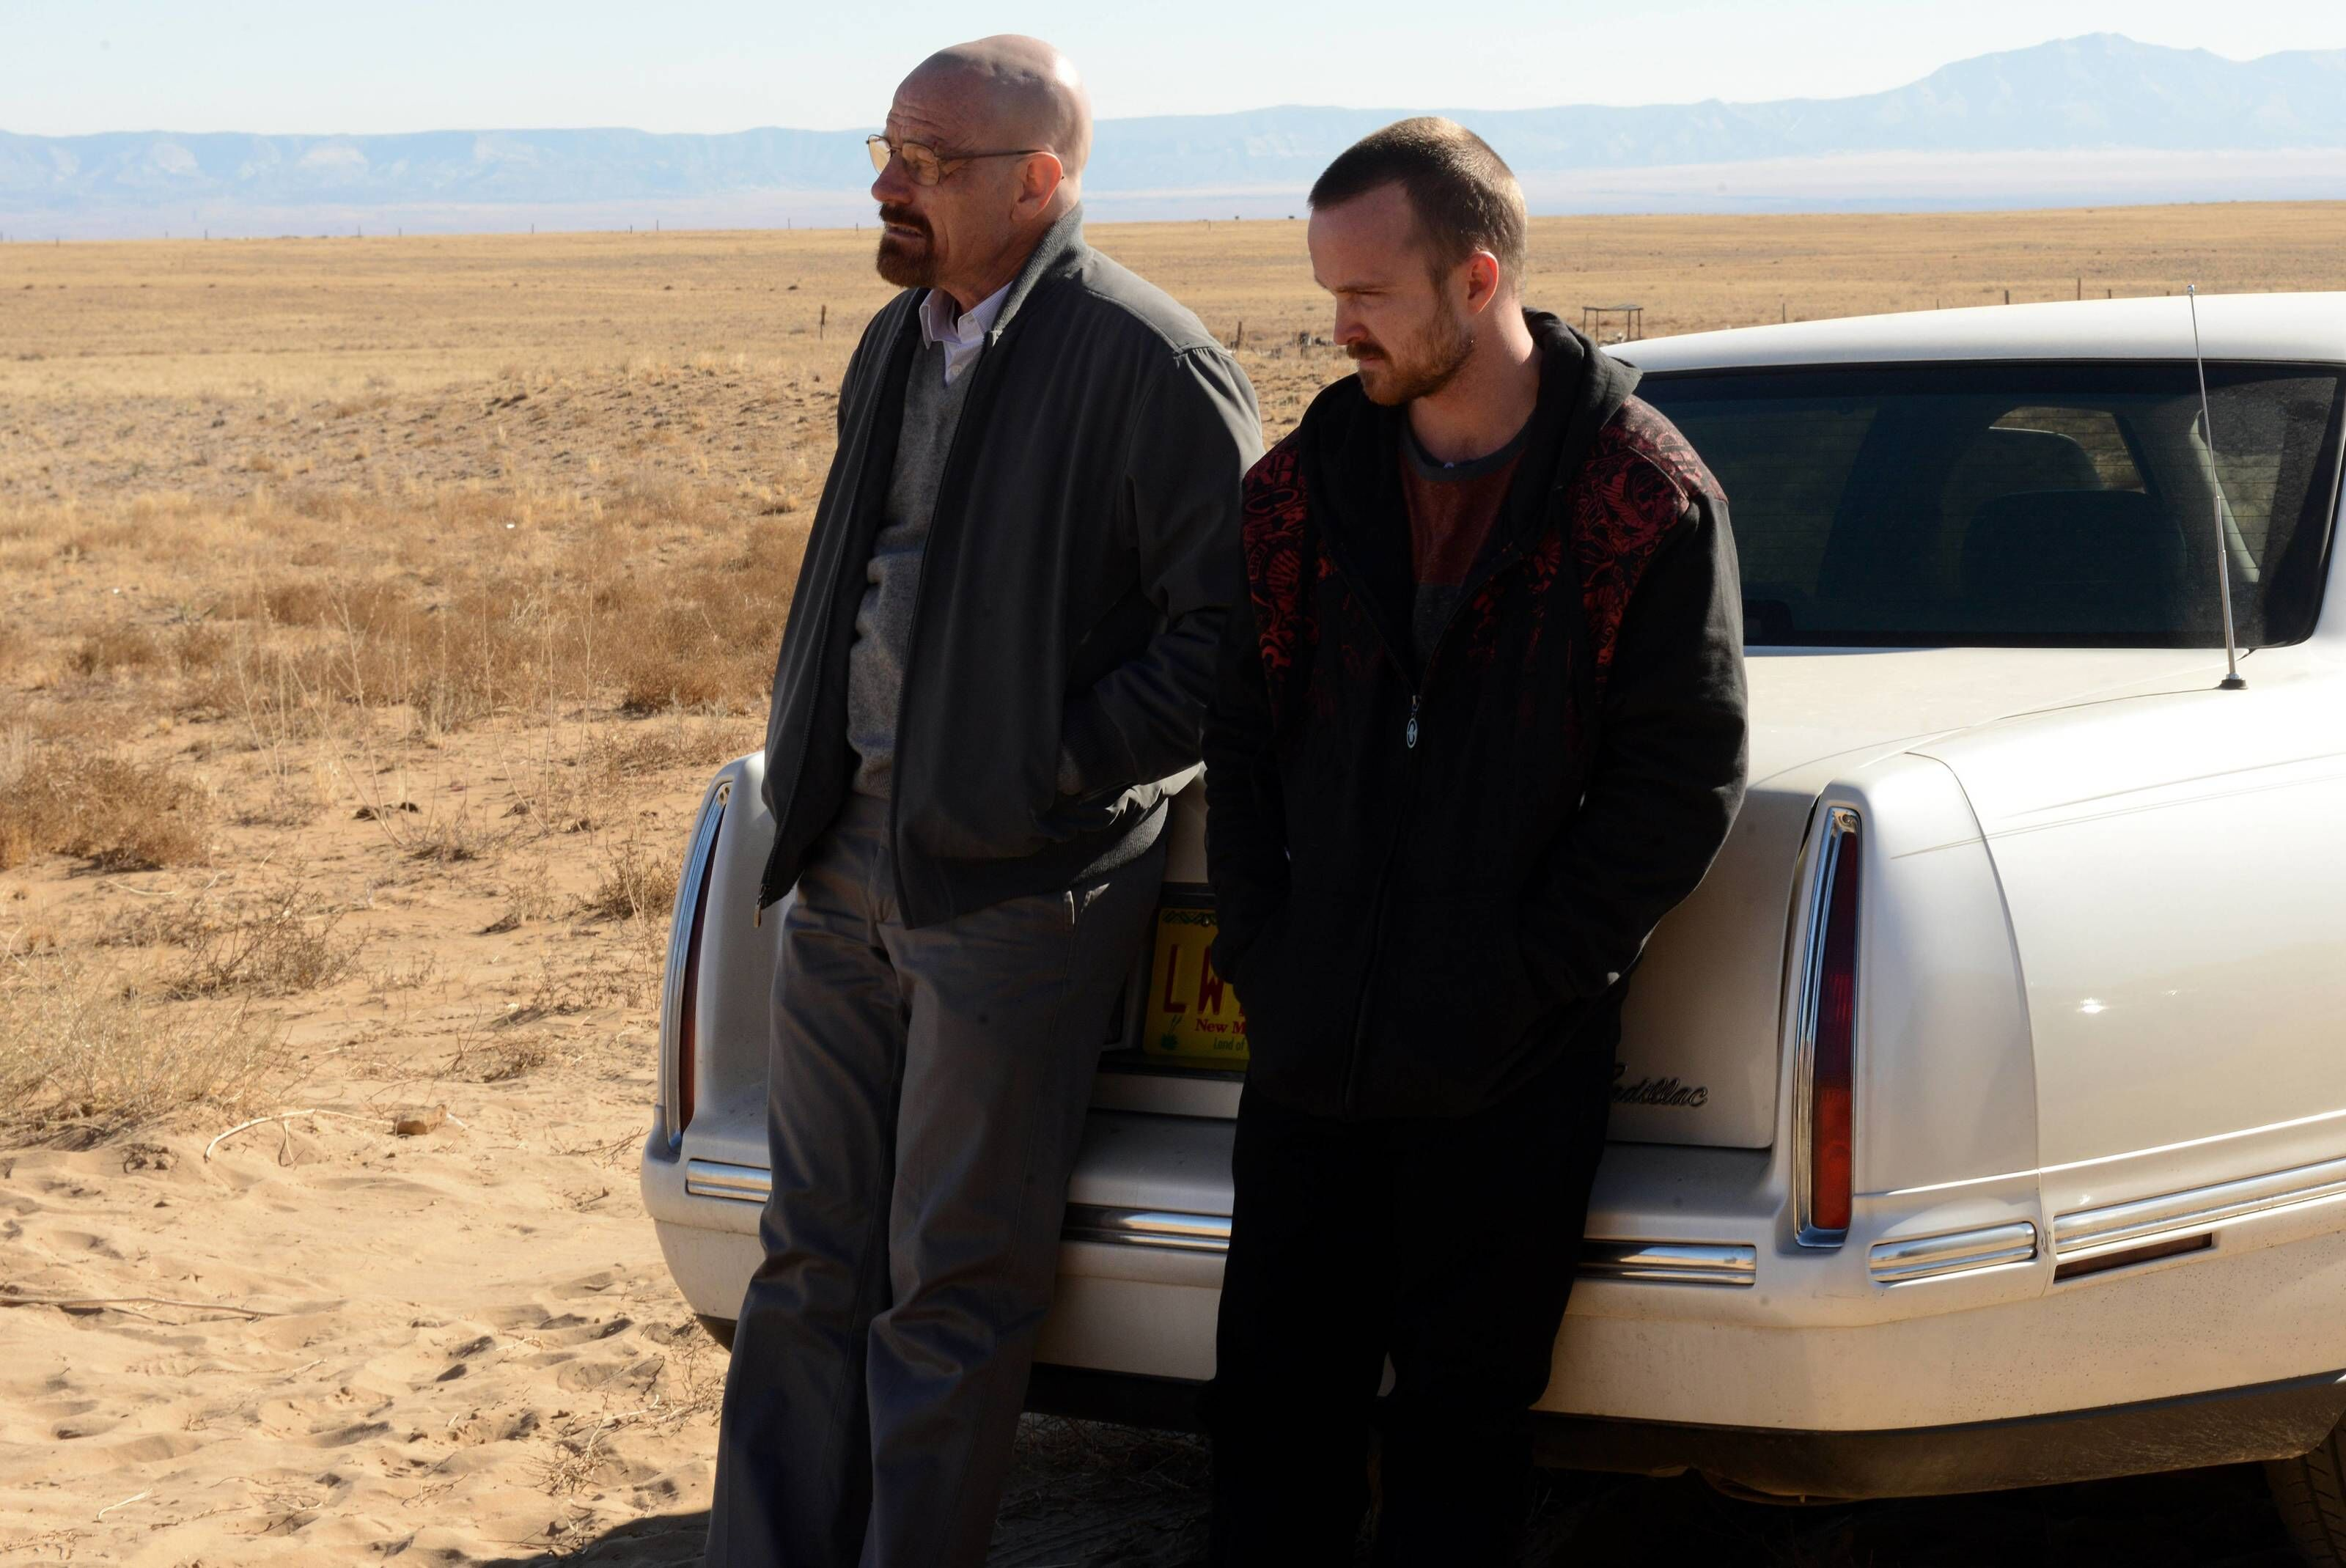 Aaron Paul shoots down hope for a Breaking Bad sequel series